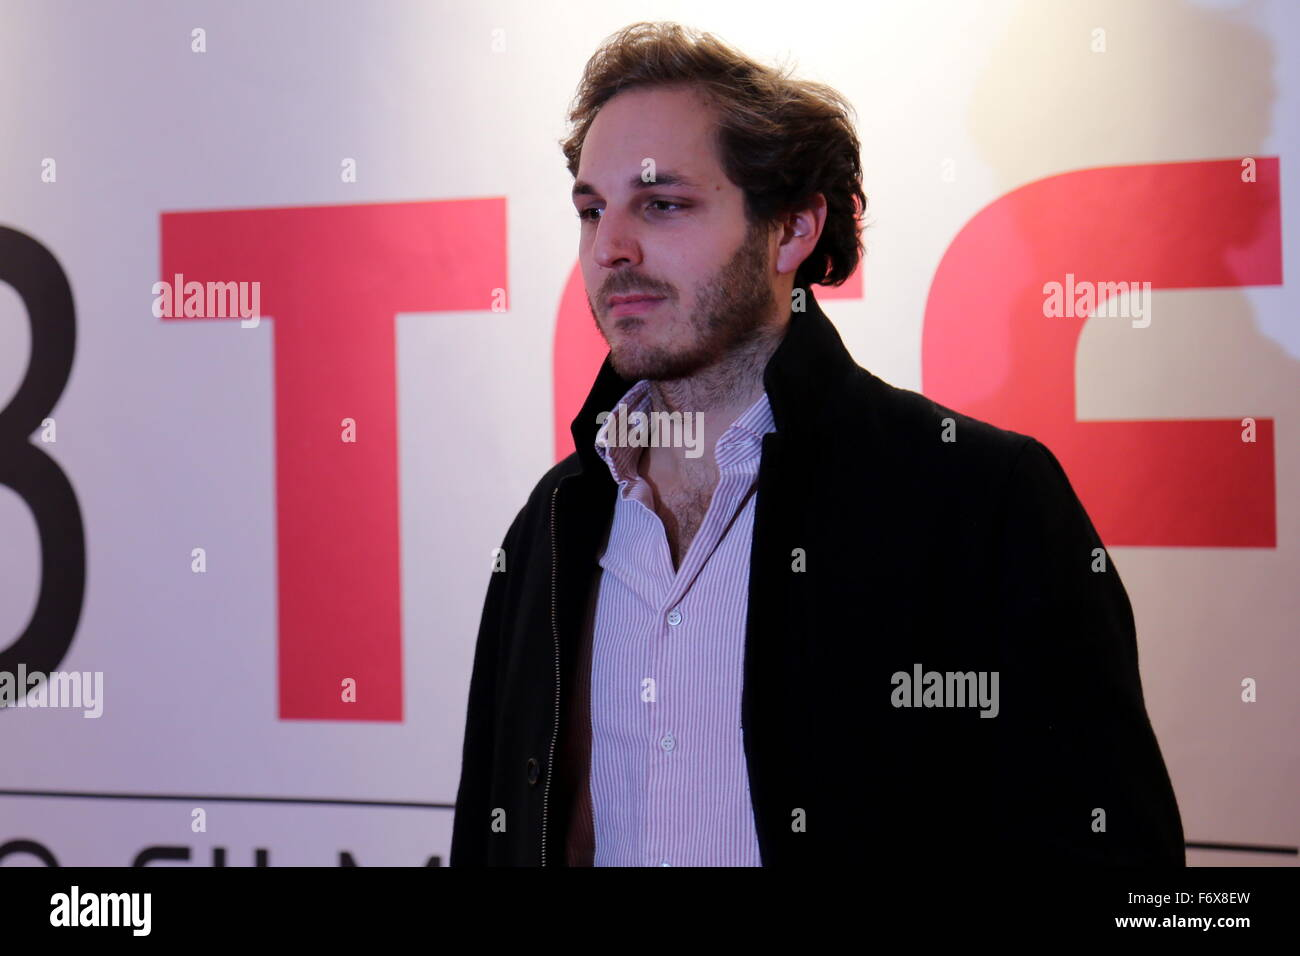 Torino, Italy. 20th Nov, 2015. Jan Ole Gerster, director and writer during the opening night of the 33rd Turin Film - Stock Image